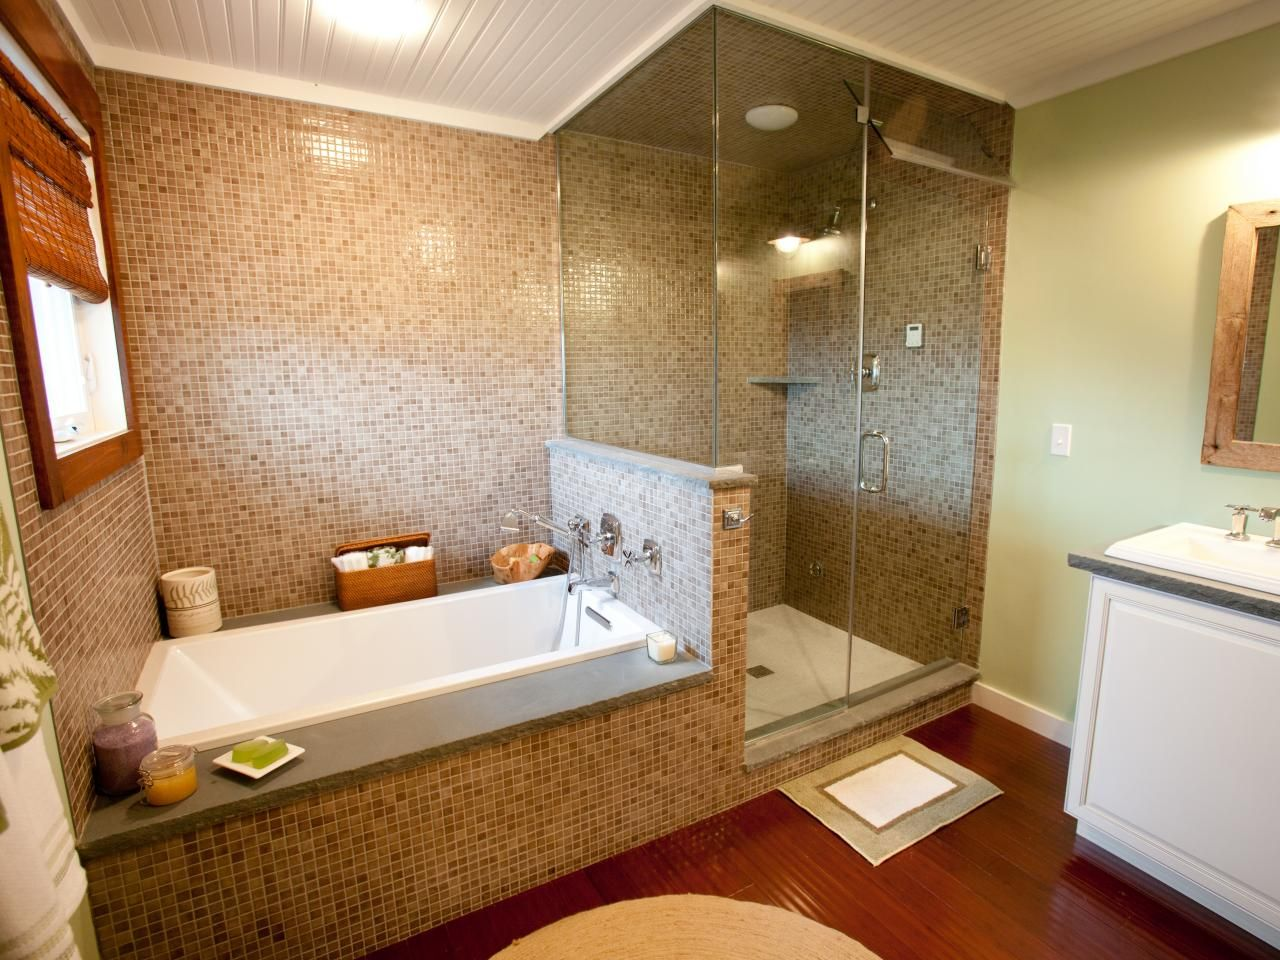 The 50 X 50 Frameless Glass Enclosed Shower Features A White